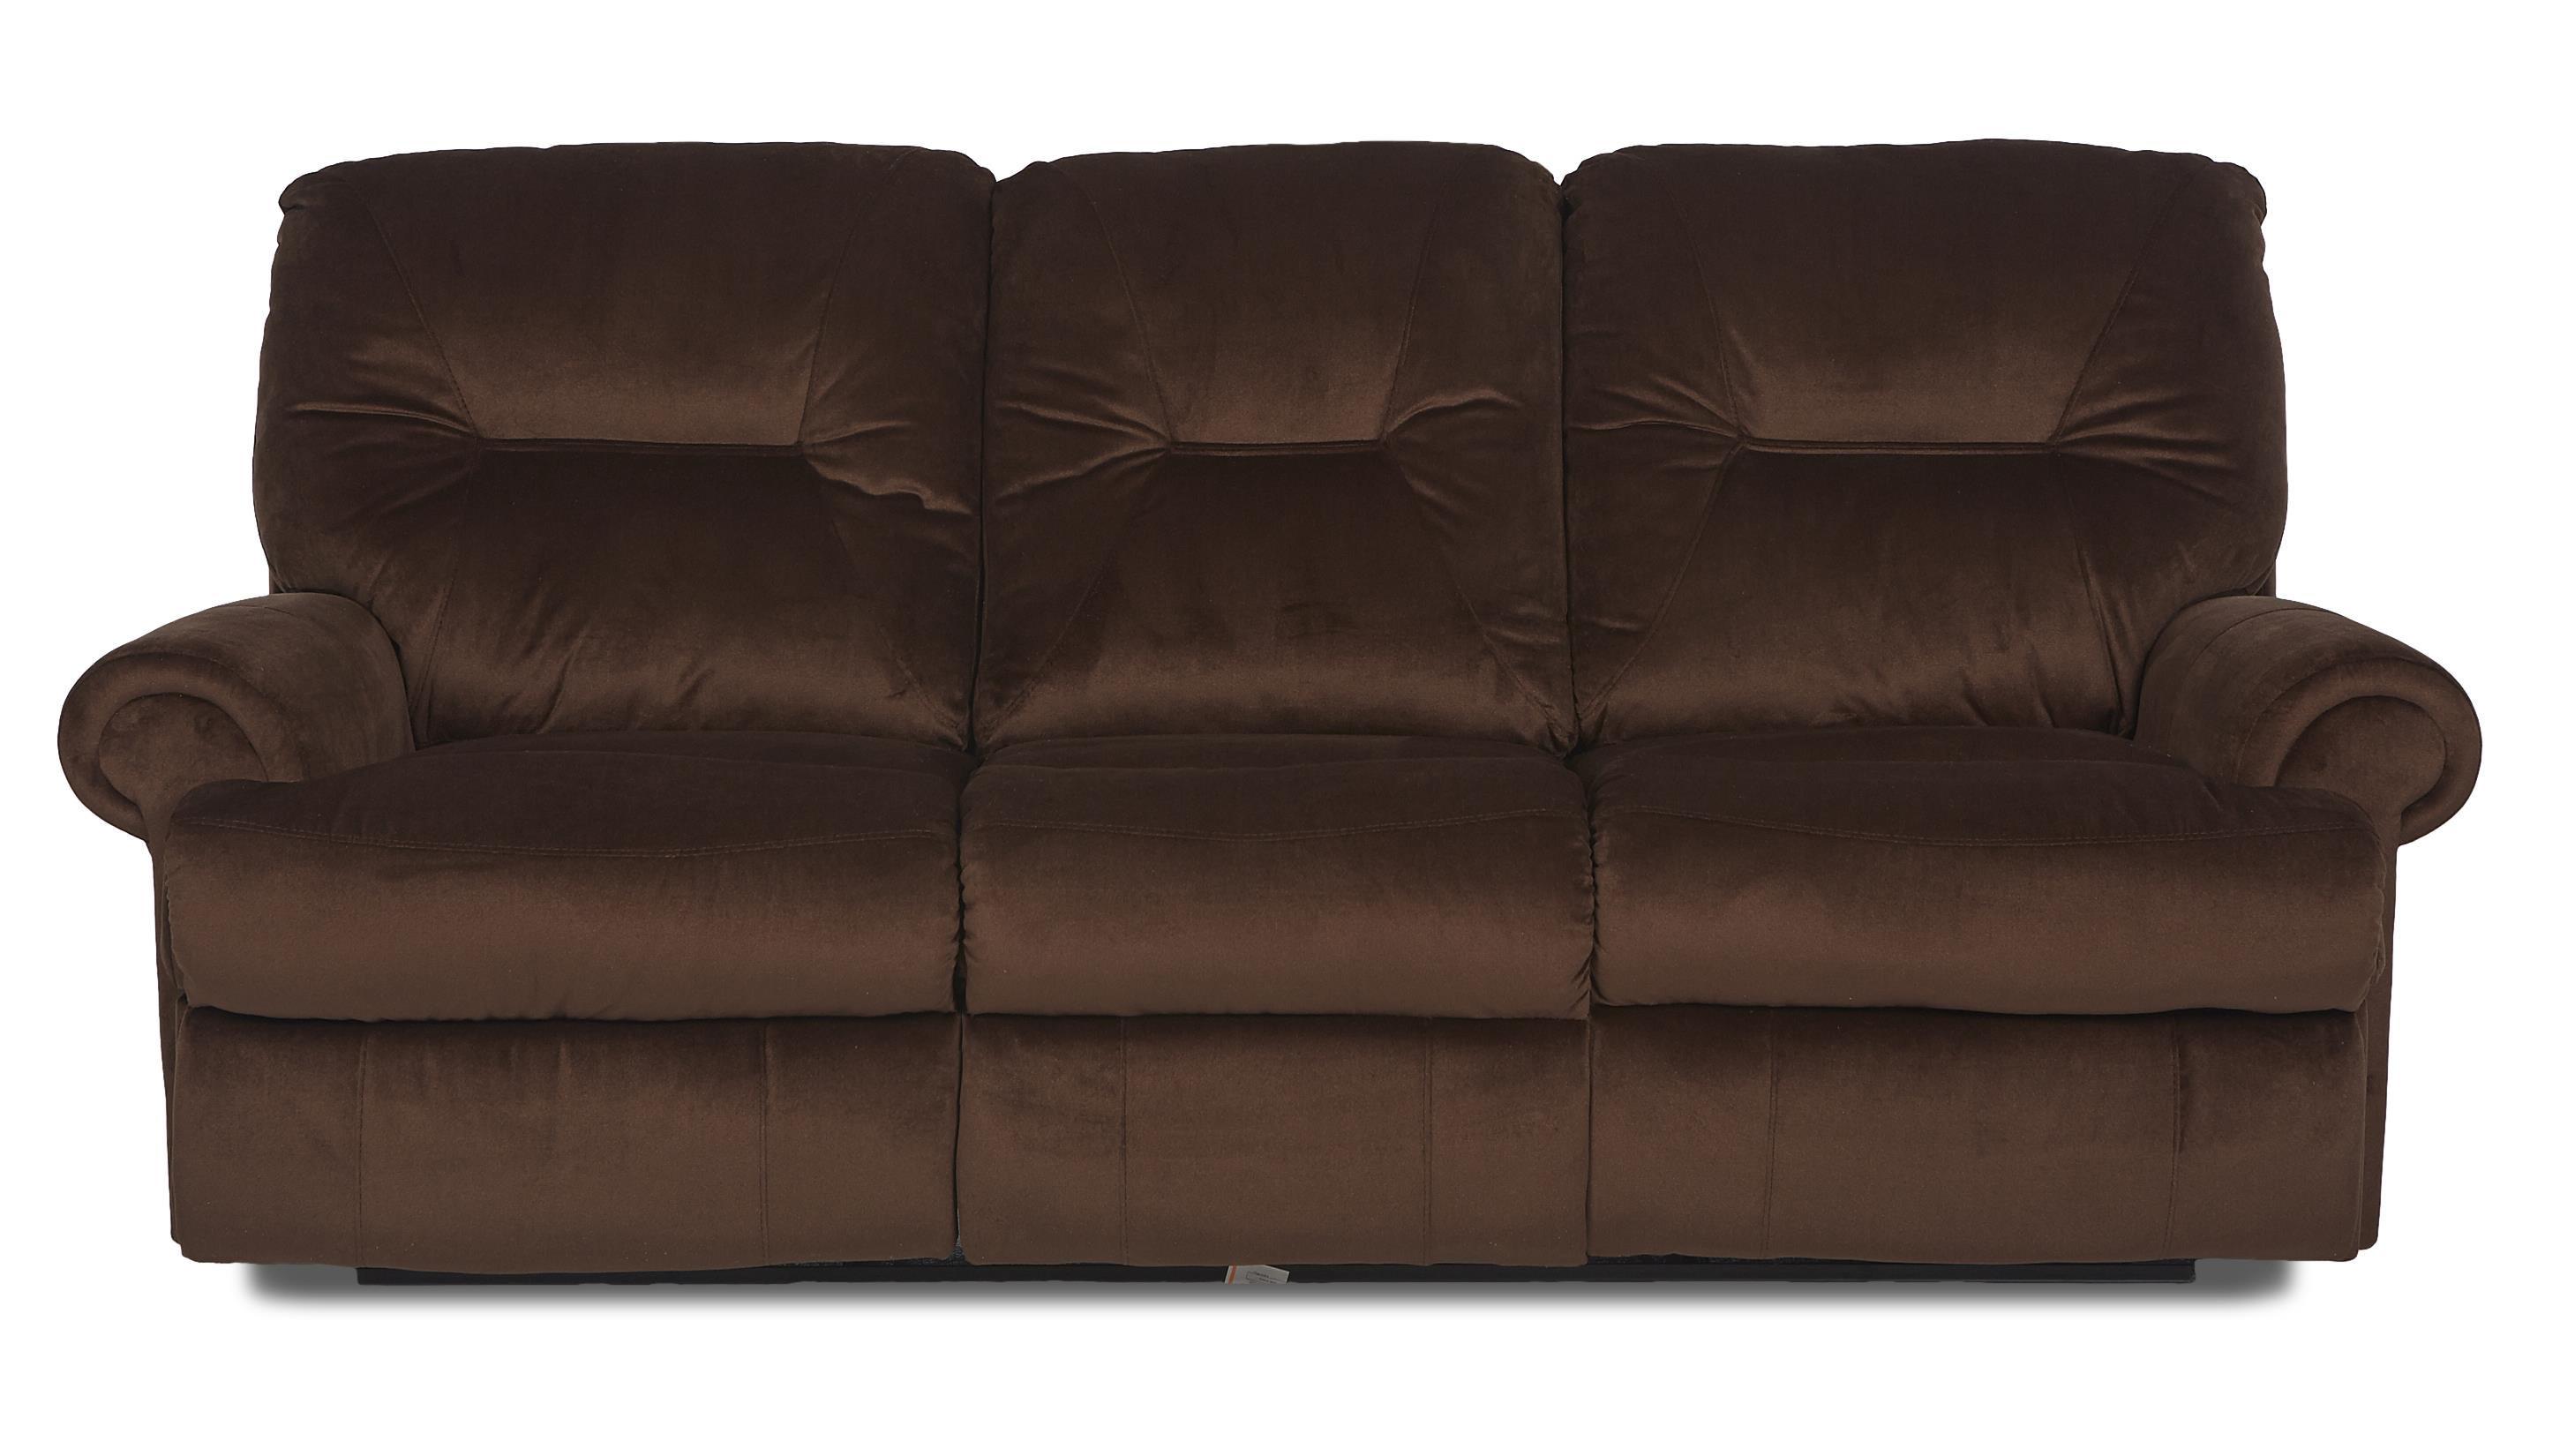 klaussner grand power reclining sofa cheap cream roadster traditional